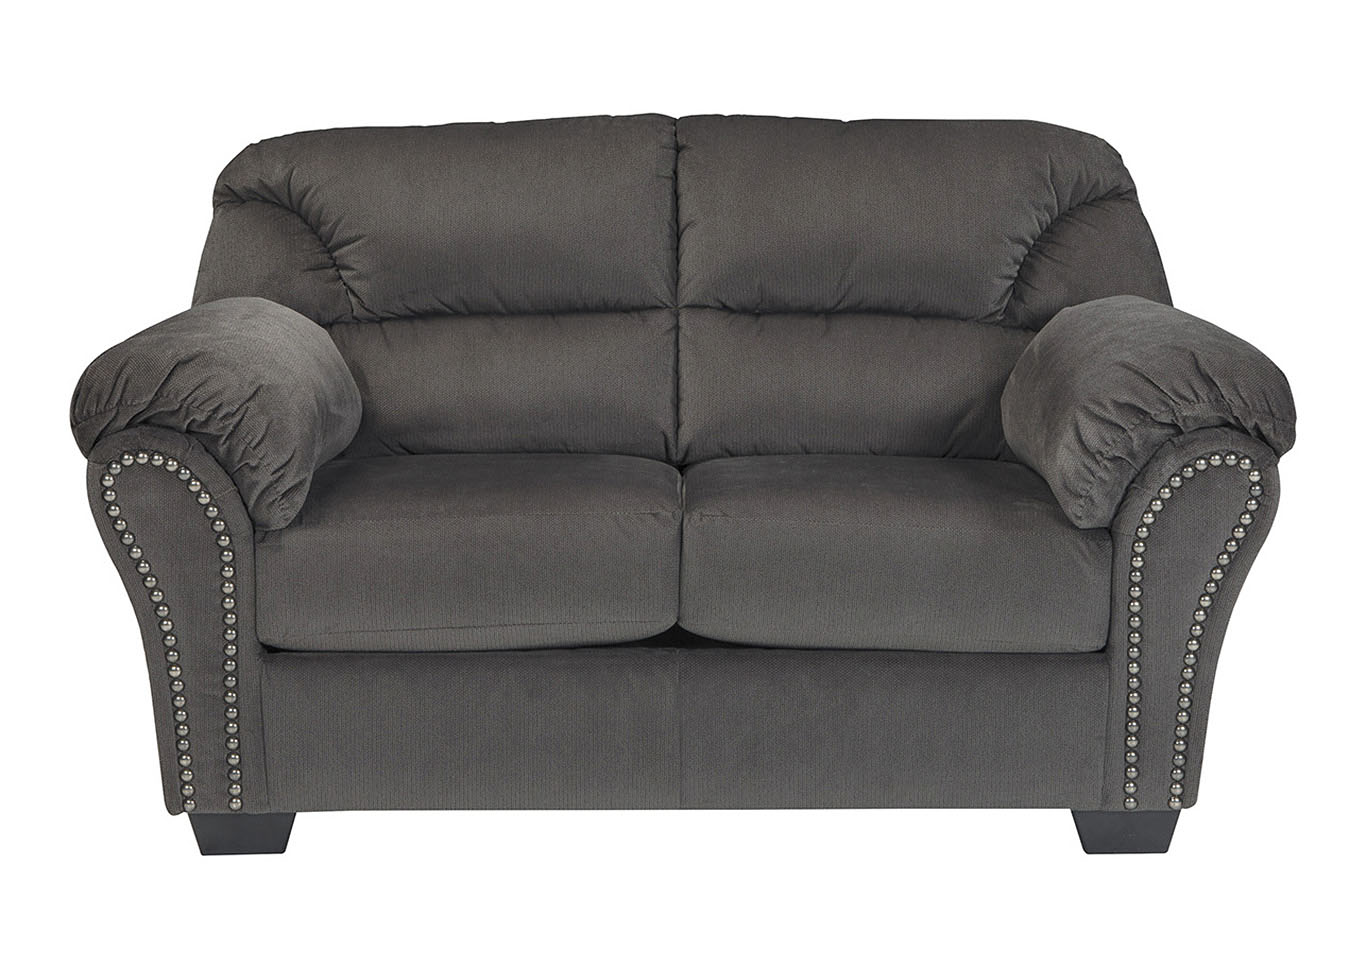 Kinlock Charcoal Loveseat,Signature Design By Ashley